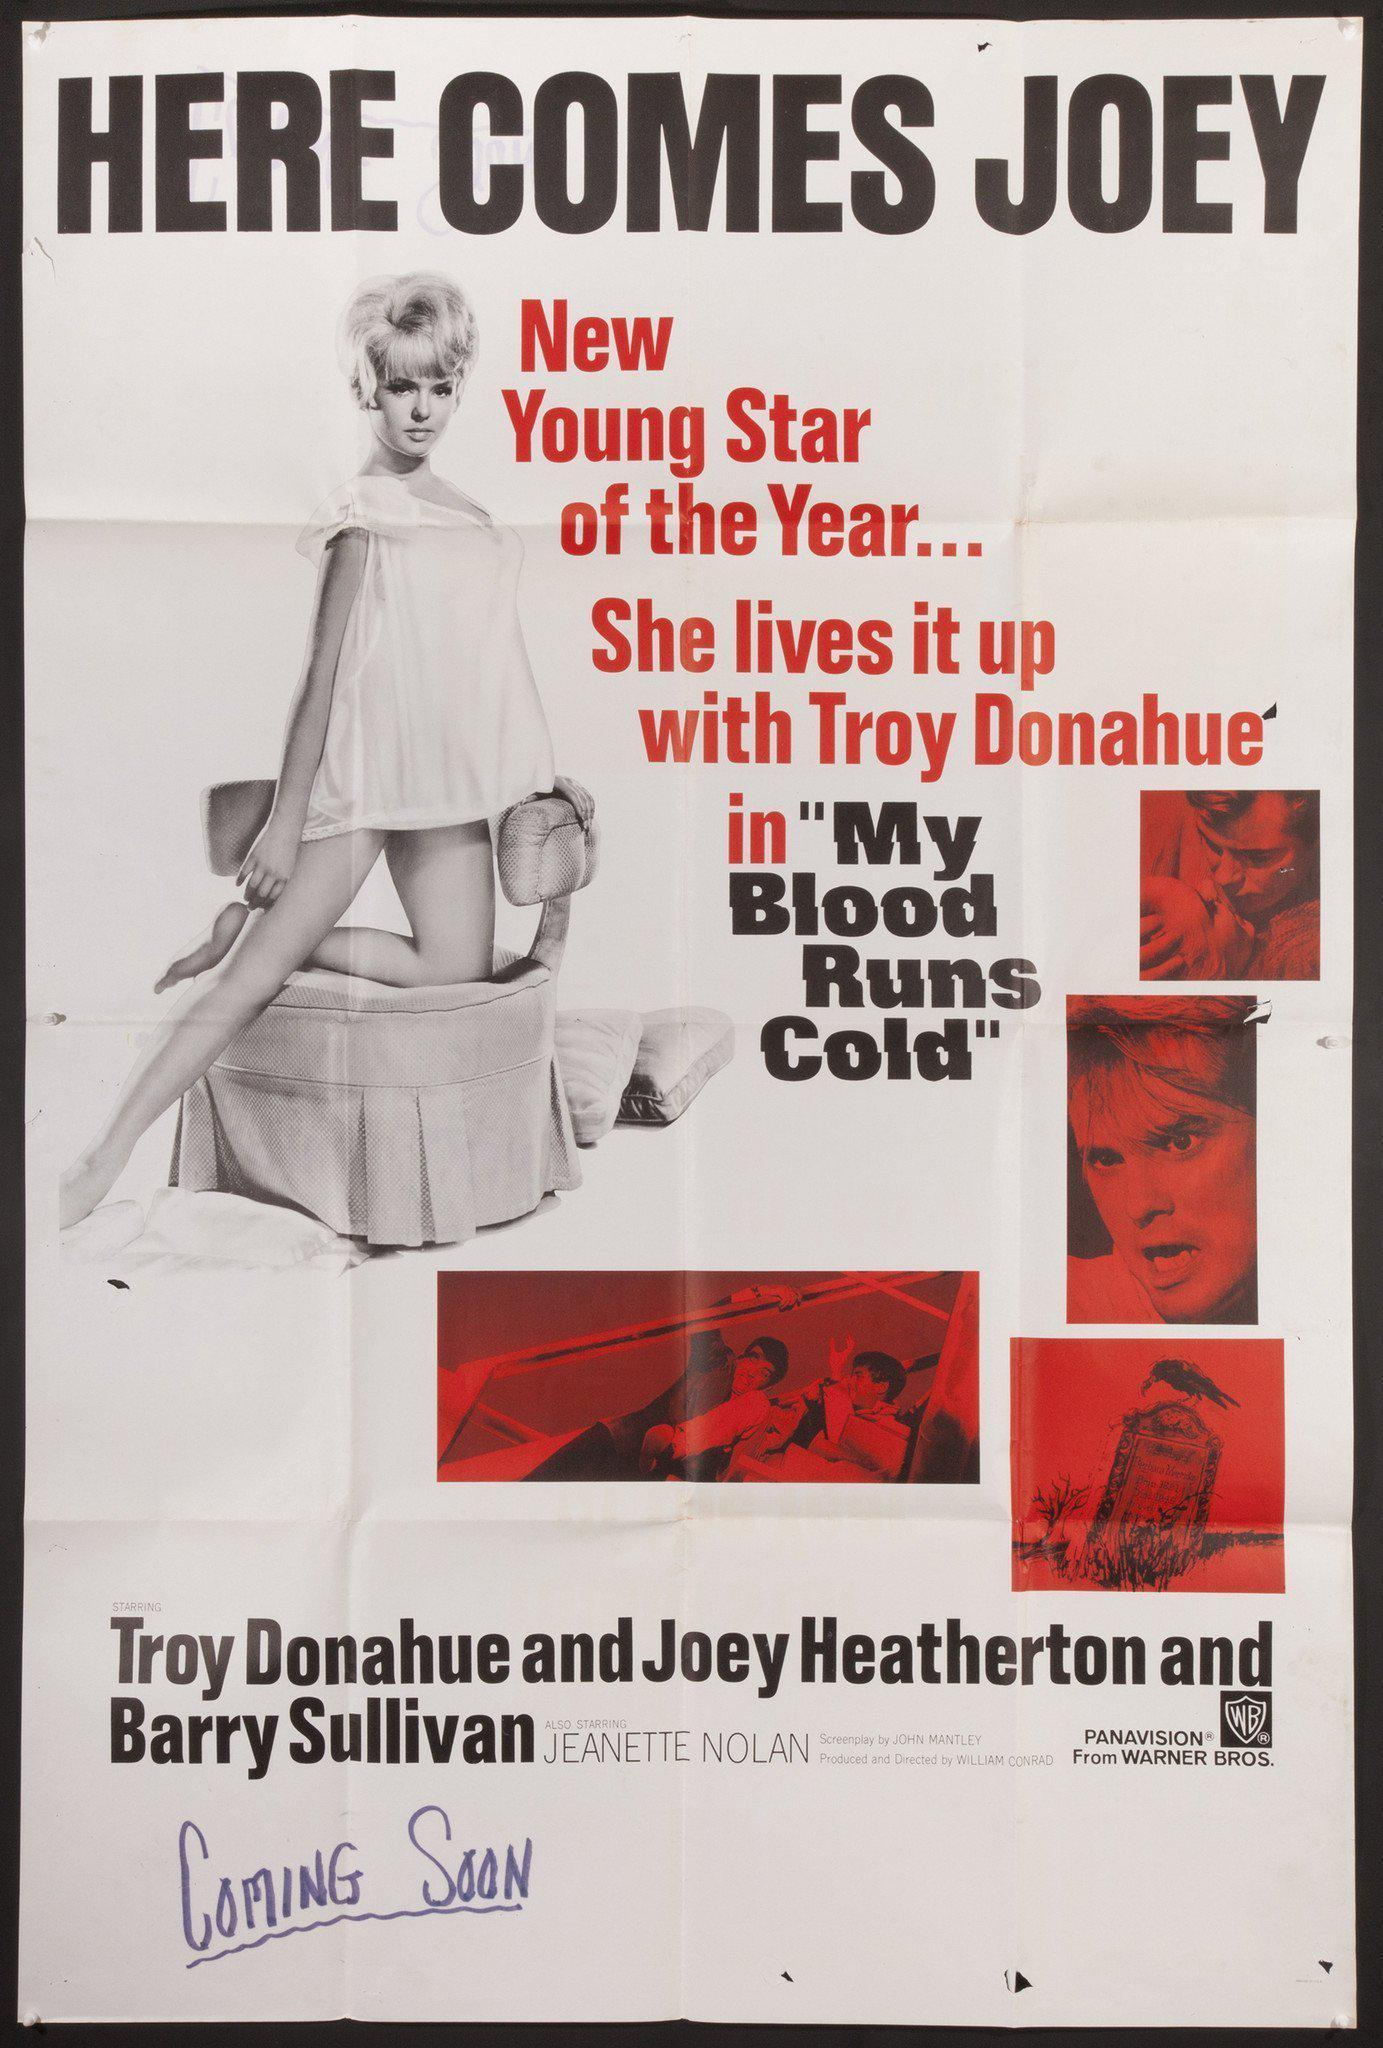 My Blood Runs Cold / Joey Heatherton 40x60 Original Vintage Movie Poster